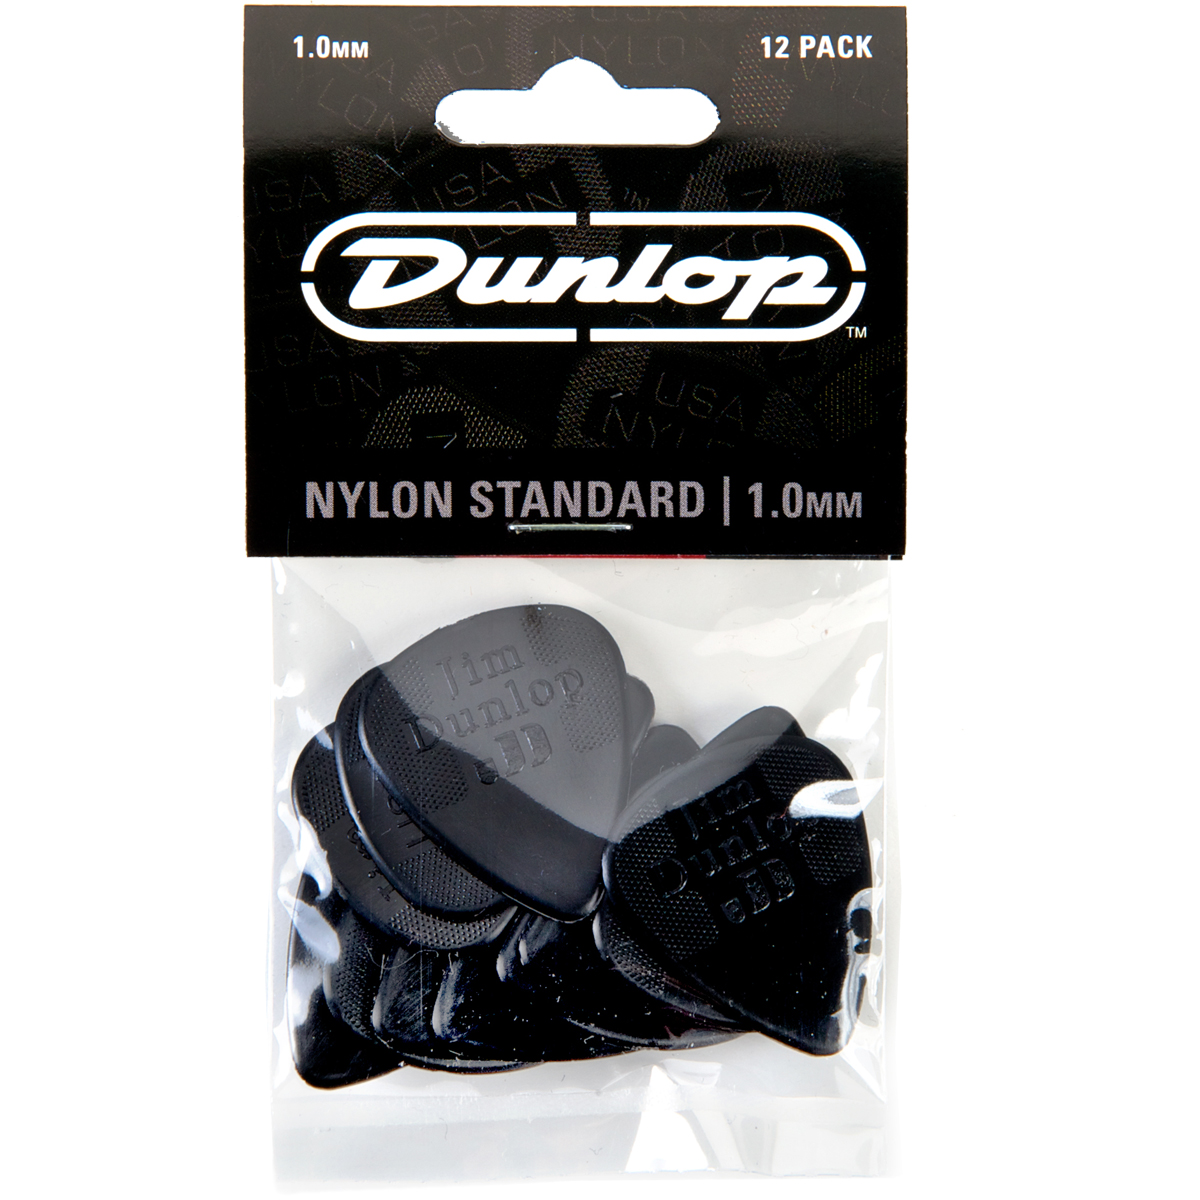 Dunlop Nylon 1.00mm Plectrums 12 Pack